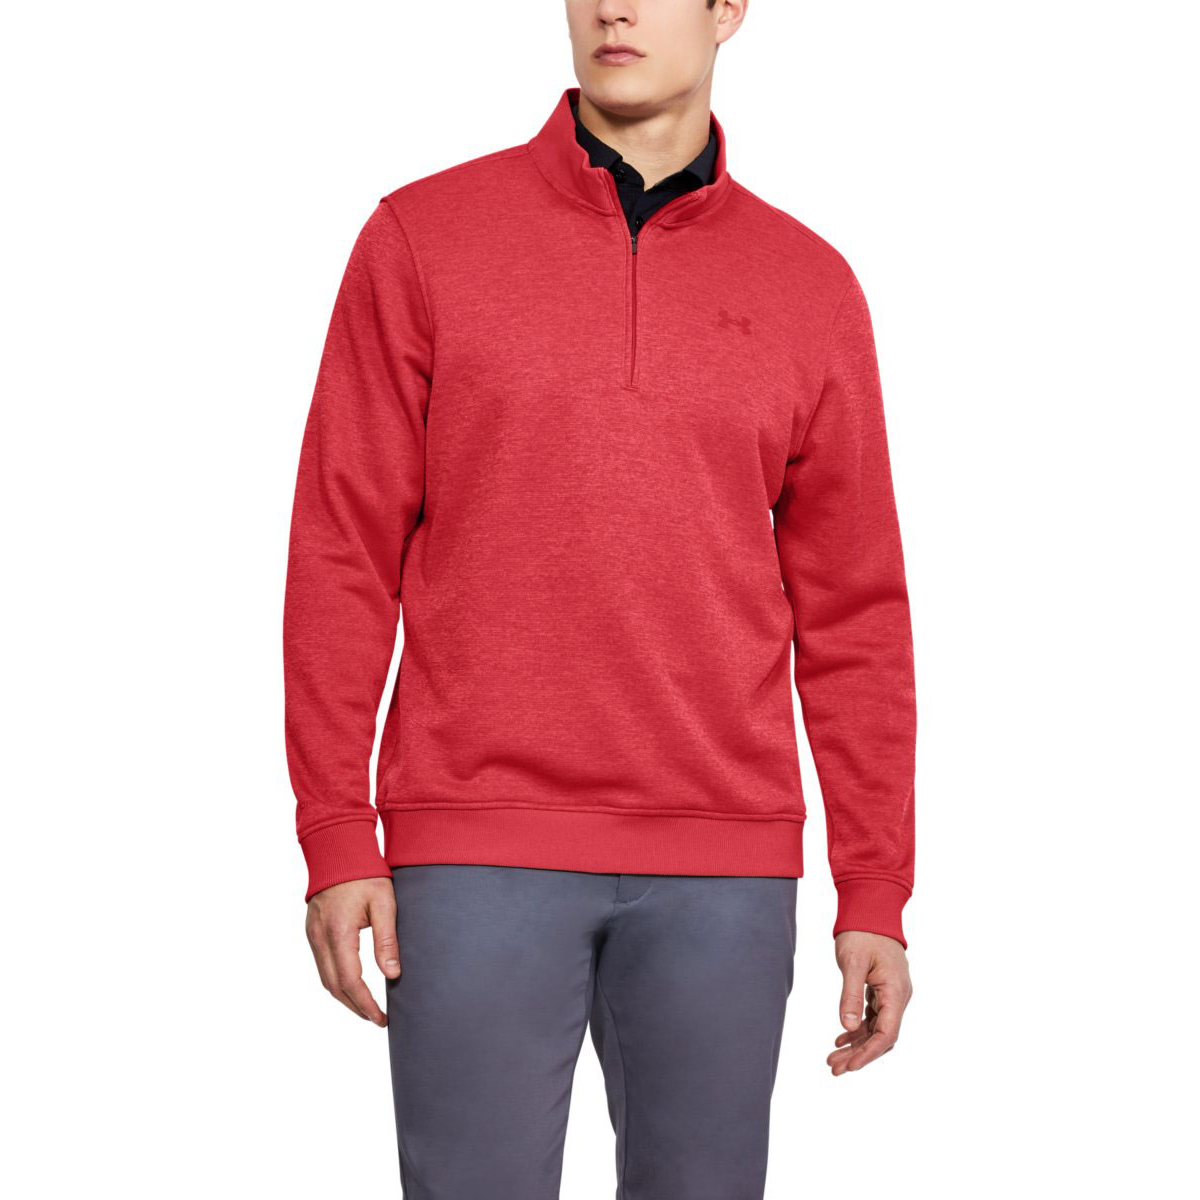 Under Armour Golf Sweater